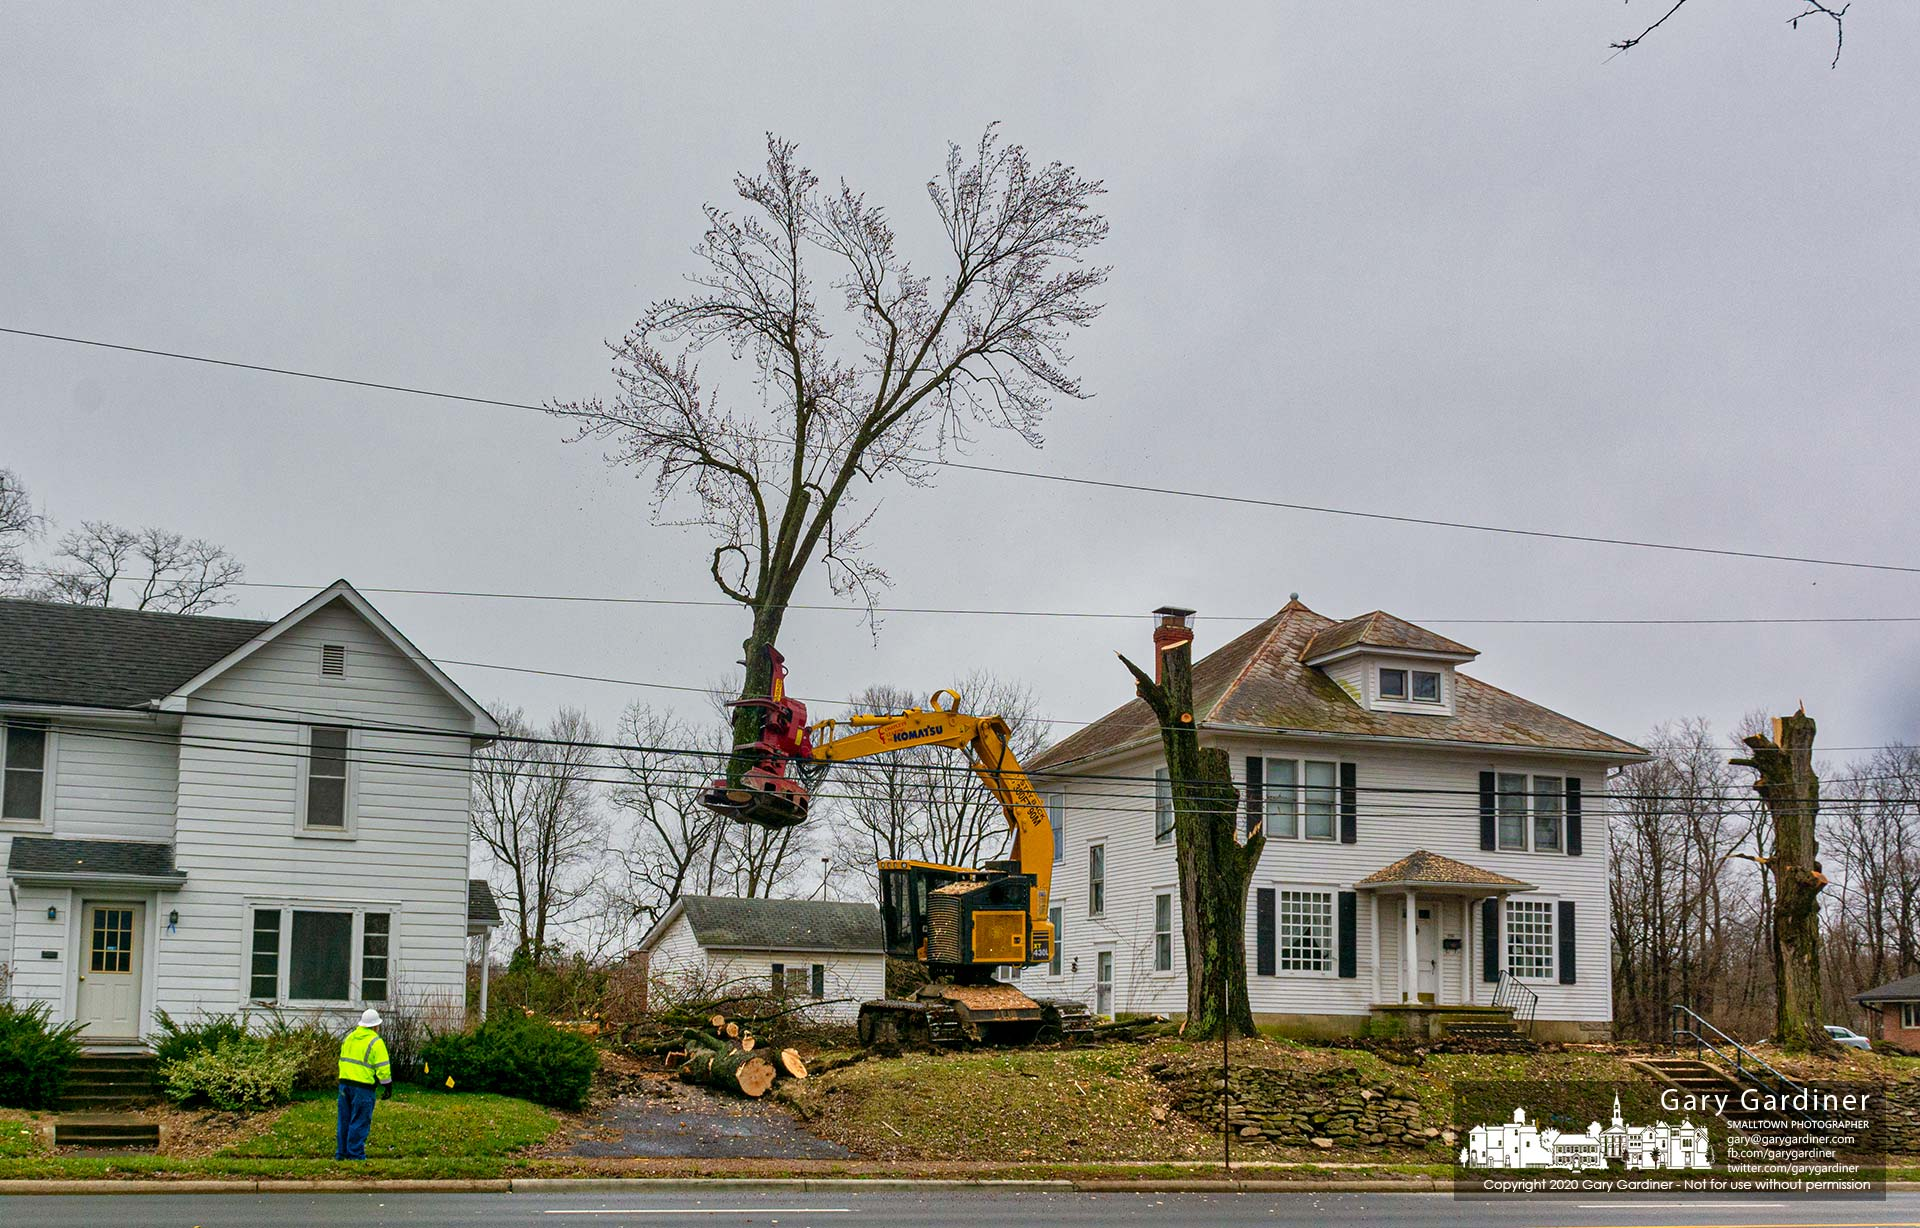 A section of a tree trunk is carried to the rear of the houses on South State Street where trees and the houses will be removed to make way for business buildings and apartments. My Final Photo for March 19, 2020.